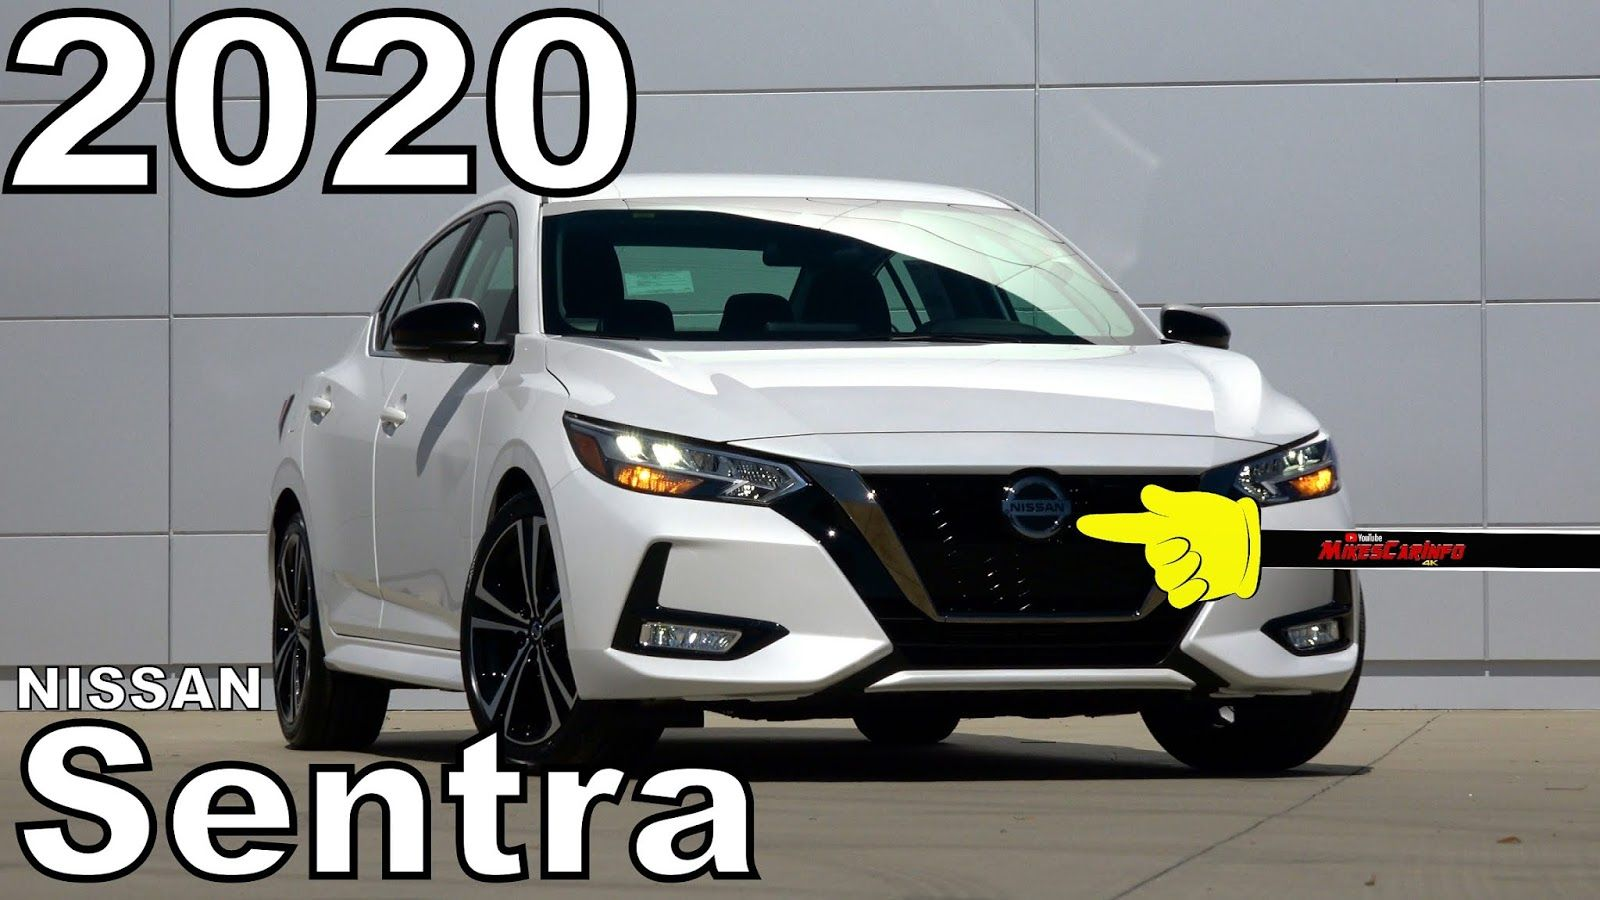 Mike S Car Info 2020 Nissan Sentra In 2020 Nissan Sentra Nissan Tire Pressure Monitoring System